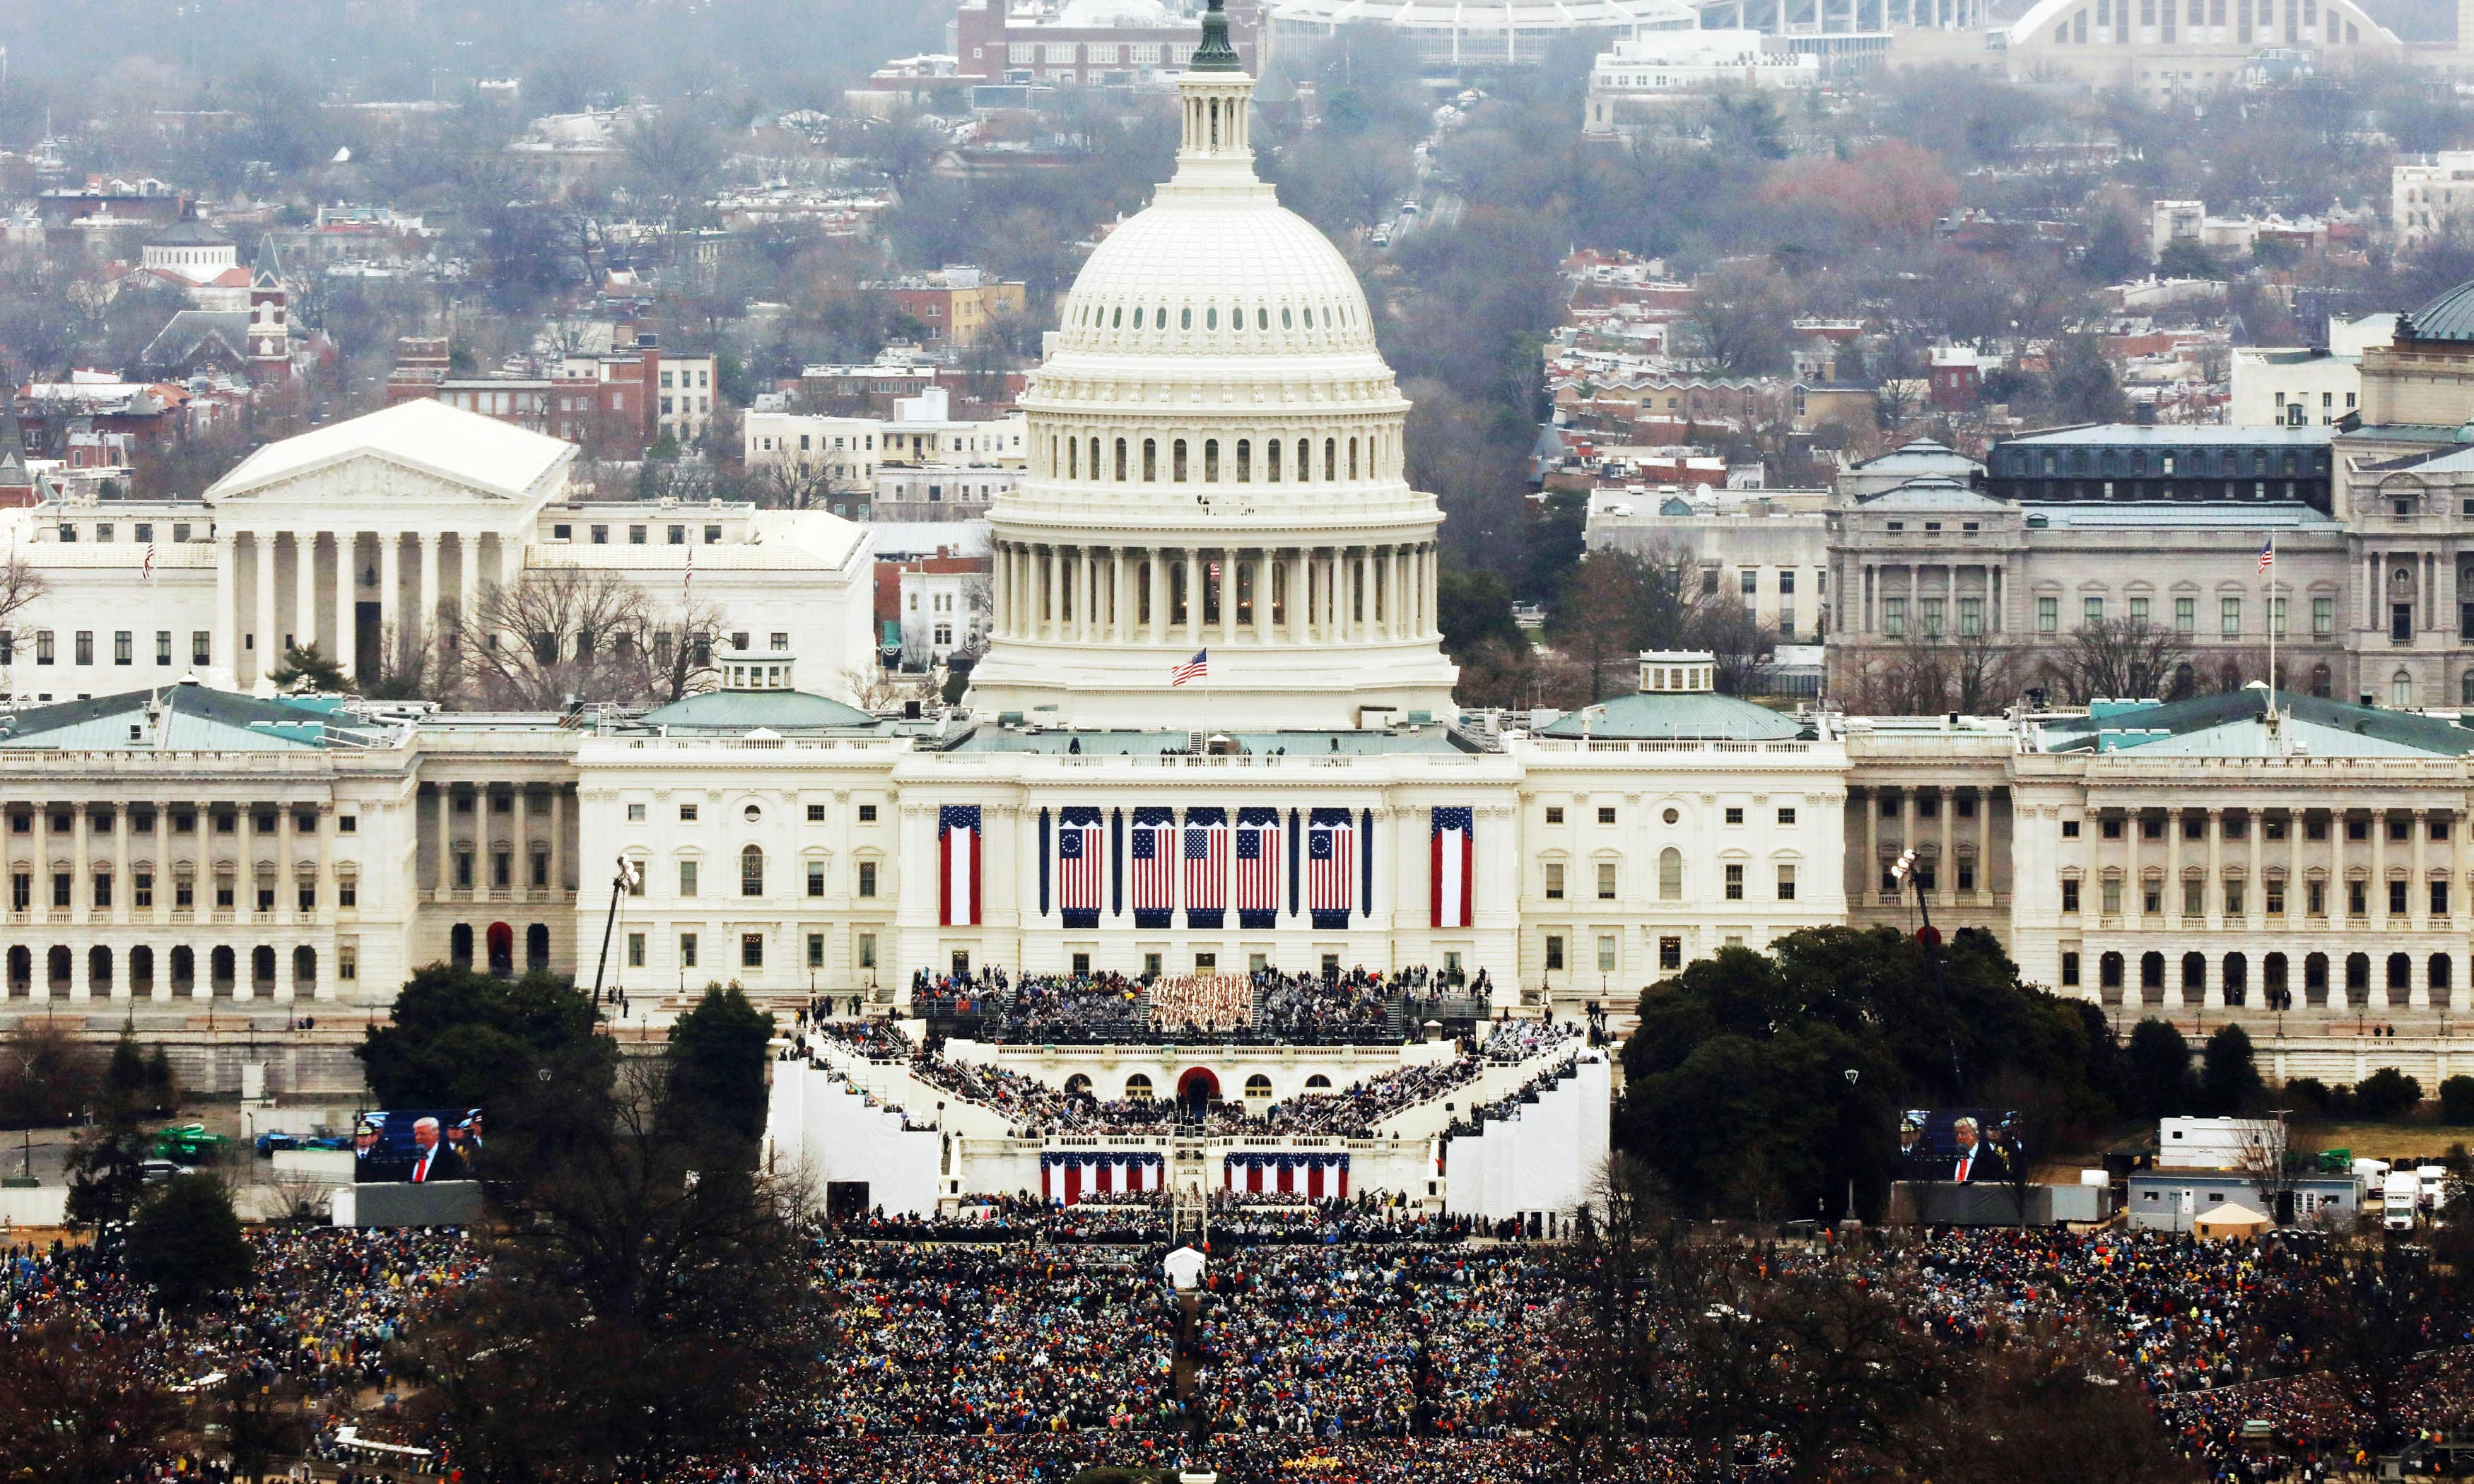 Attendees partake in the inauguration ceremonies to swear in Donald Trump as the 45th president of the United States. -Reuters